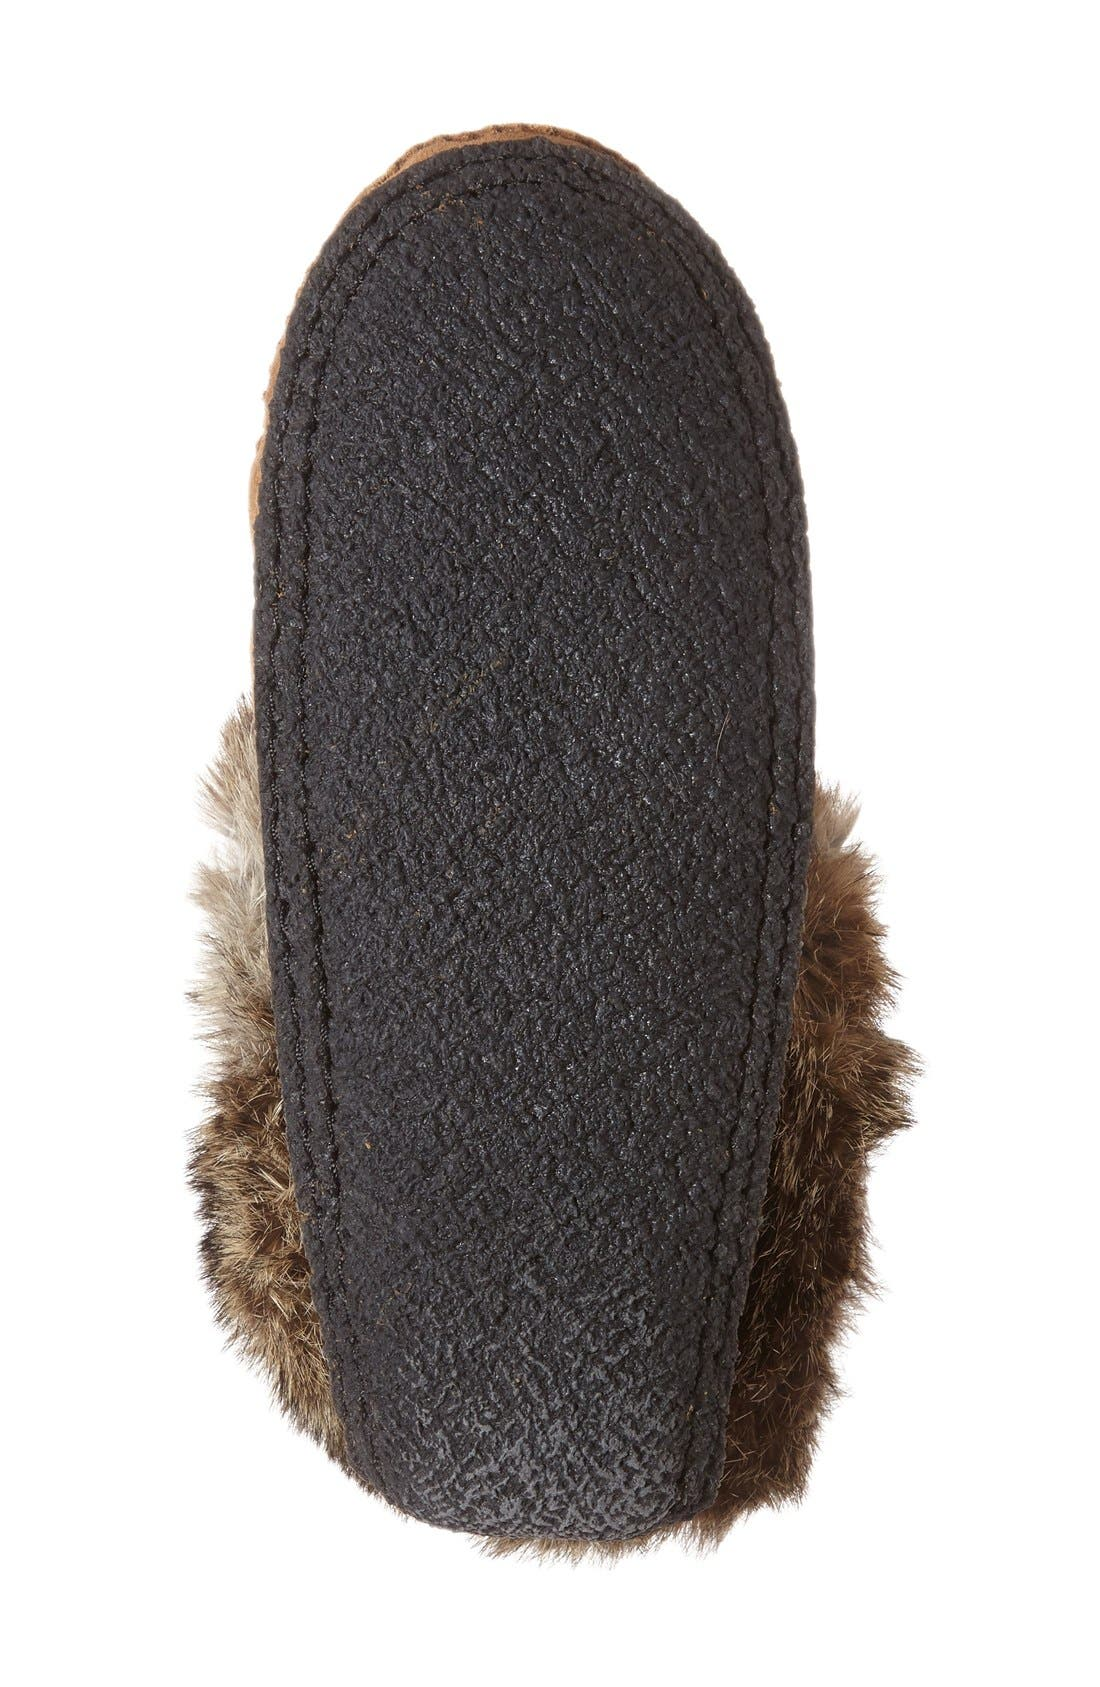 Genuine Shearling and Rabbit Fur Mukluk Slipper,                             Alternate thumbnail 3, color,                             OAK RABBIT FUR SUEDE